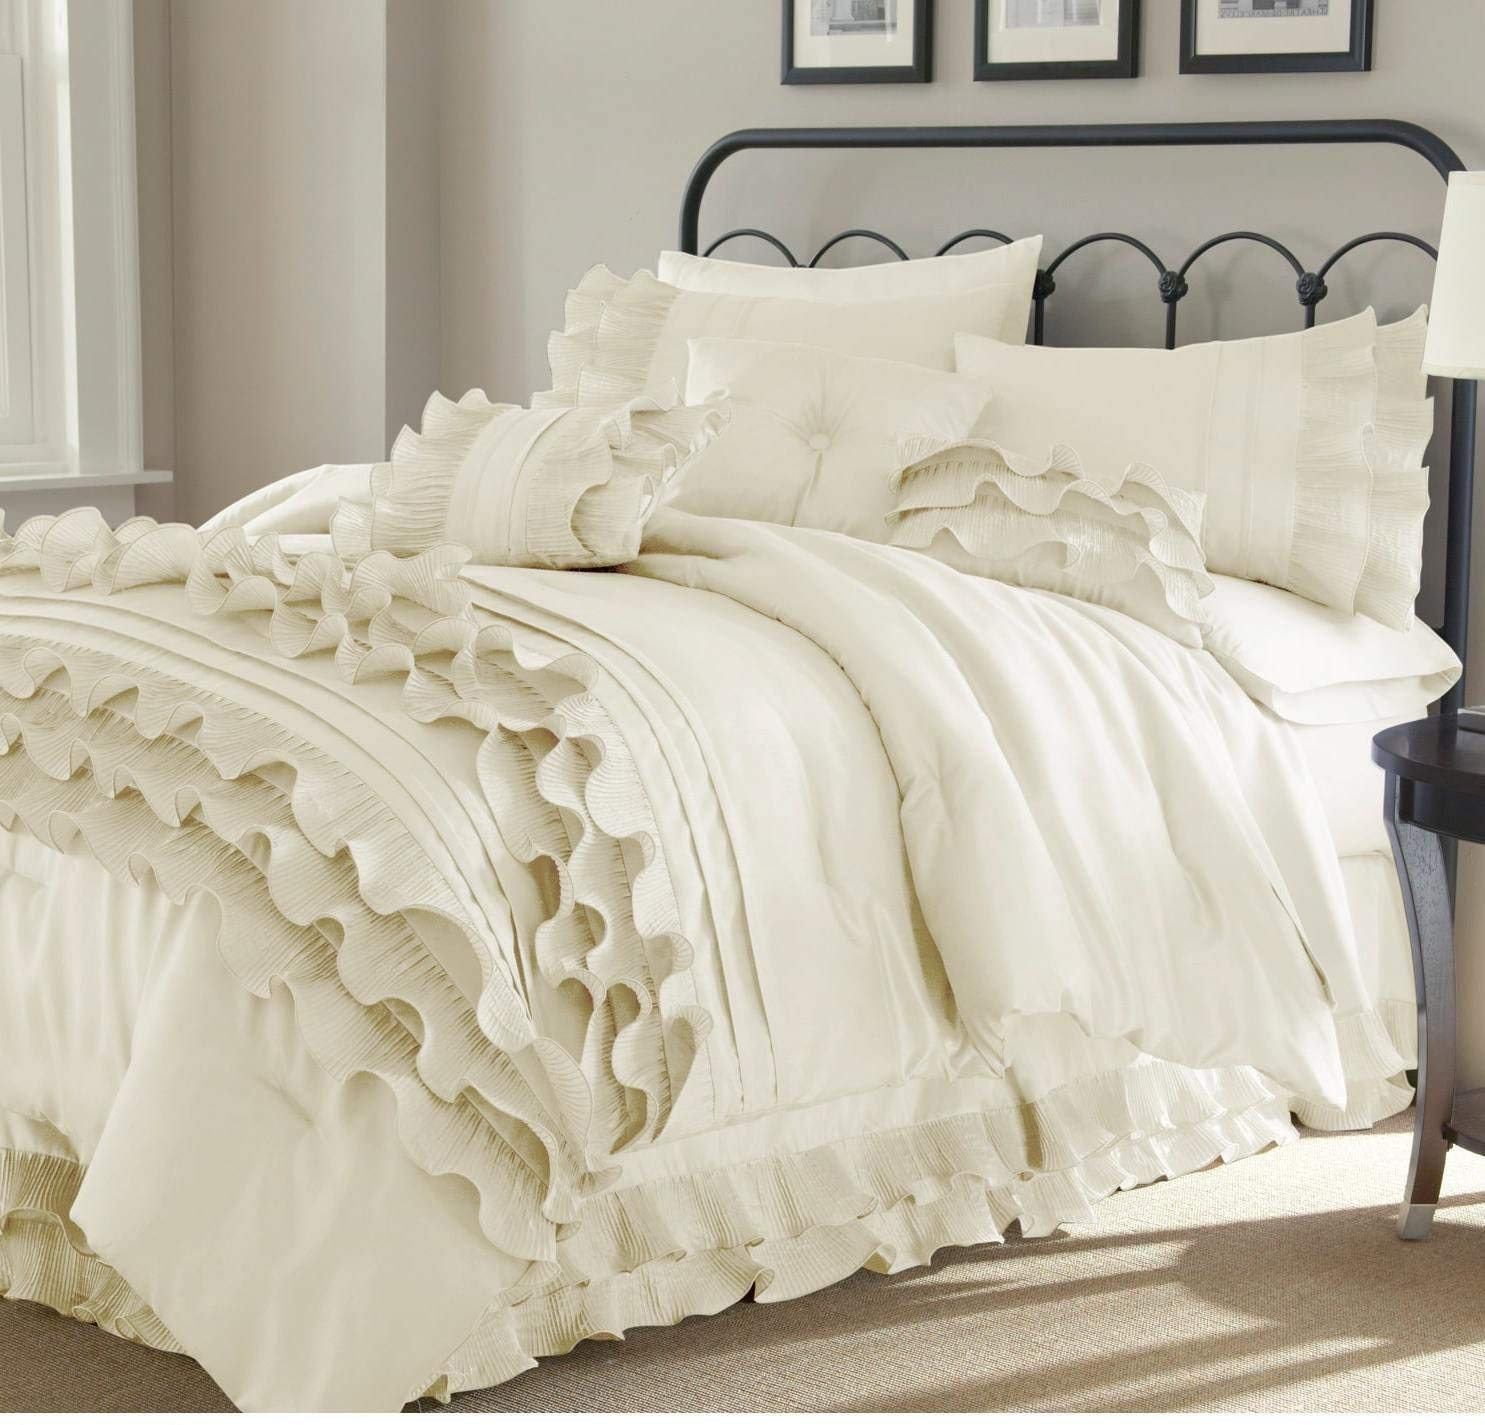 Buy 8pc Pearl White Ruffled Stripes Pattern Comforter King Set Shabby Chic Ruffles Lines Design Luxury Modern Bedrooms Neutral Solid Color Unisex Classic French Country In Cheap Price On Alibaba Com